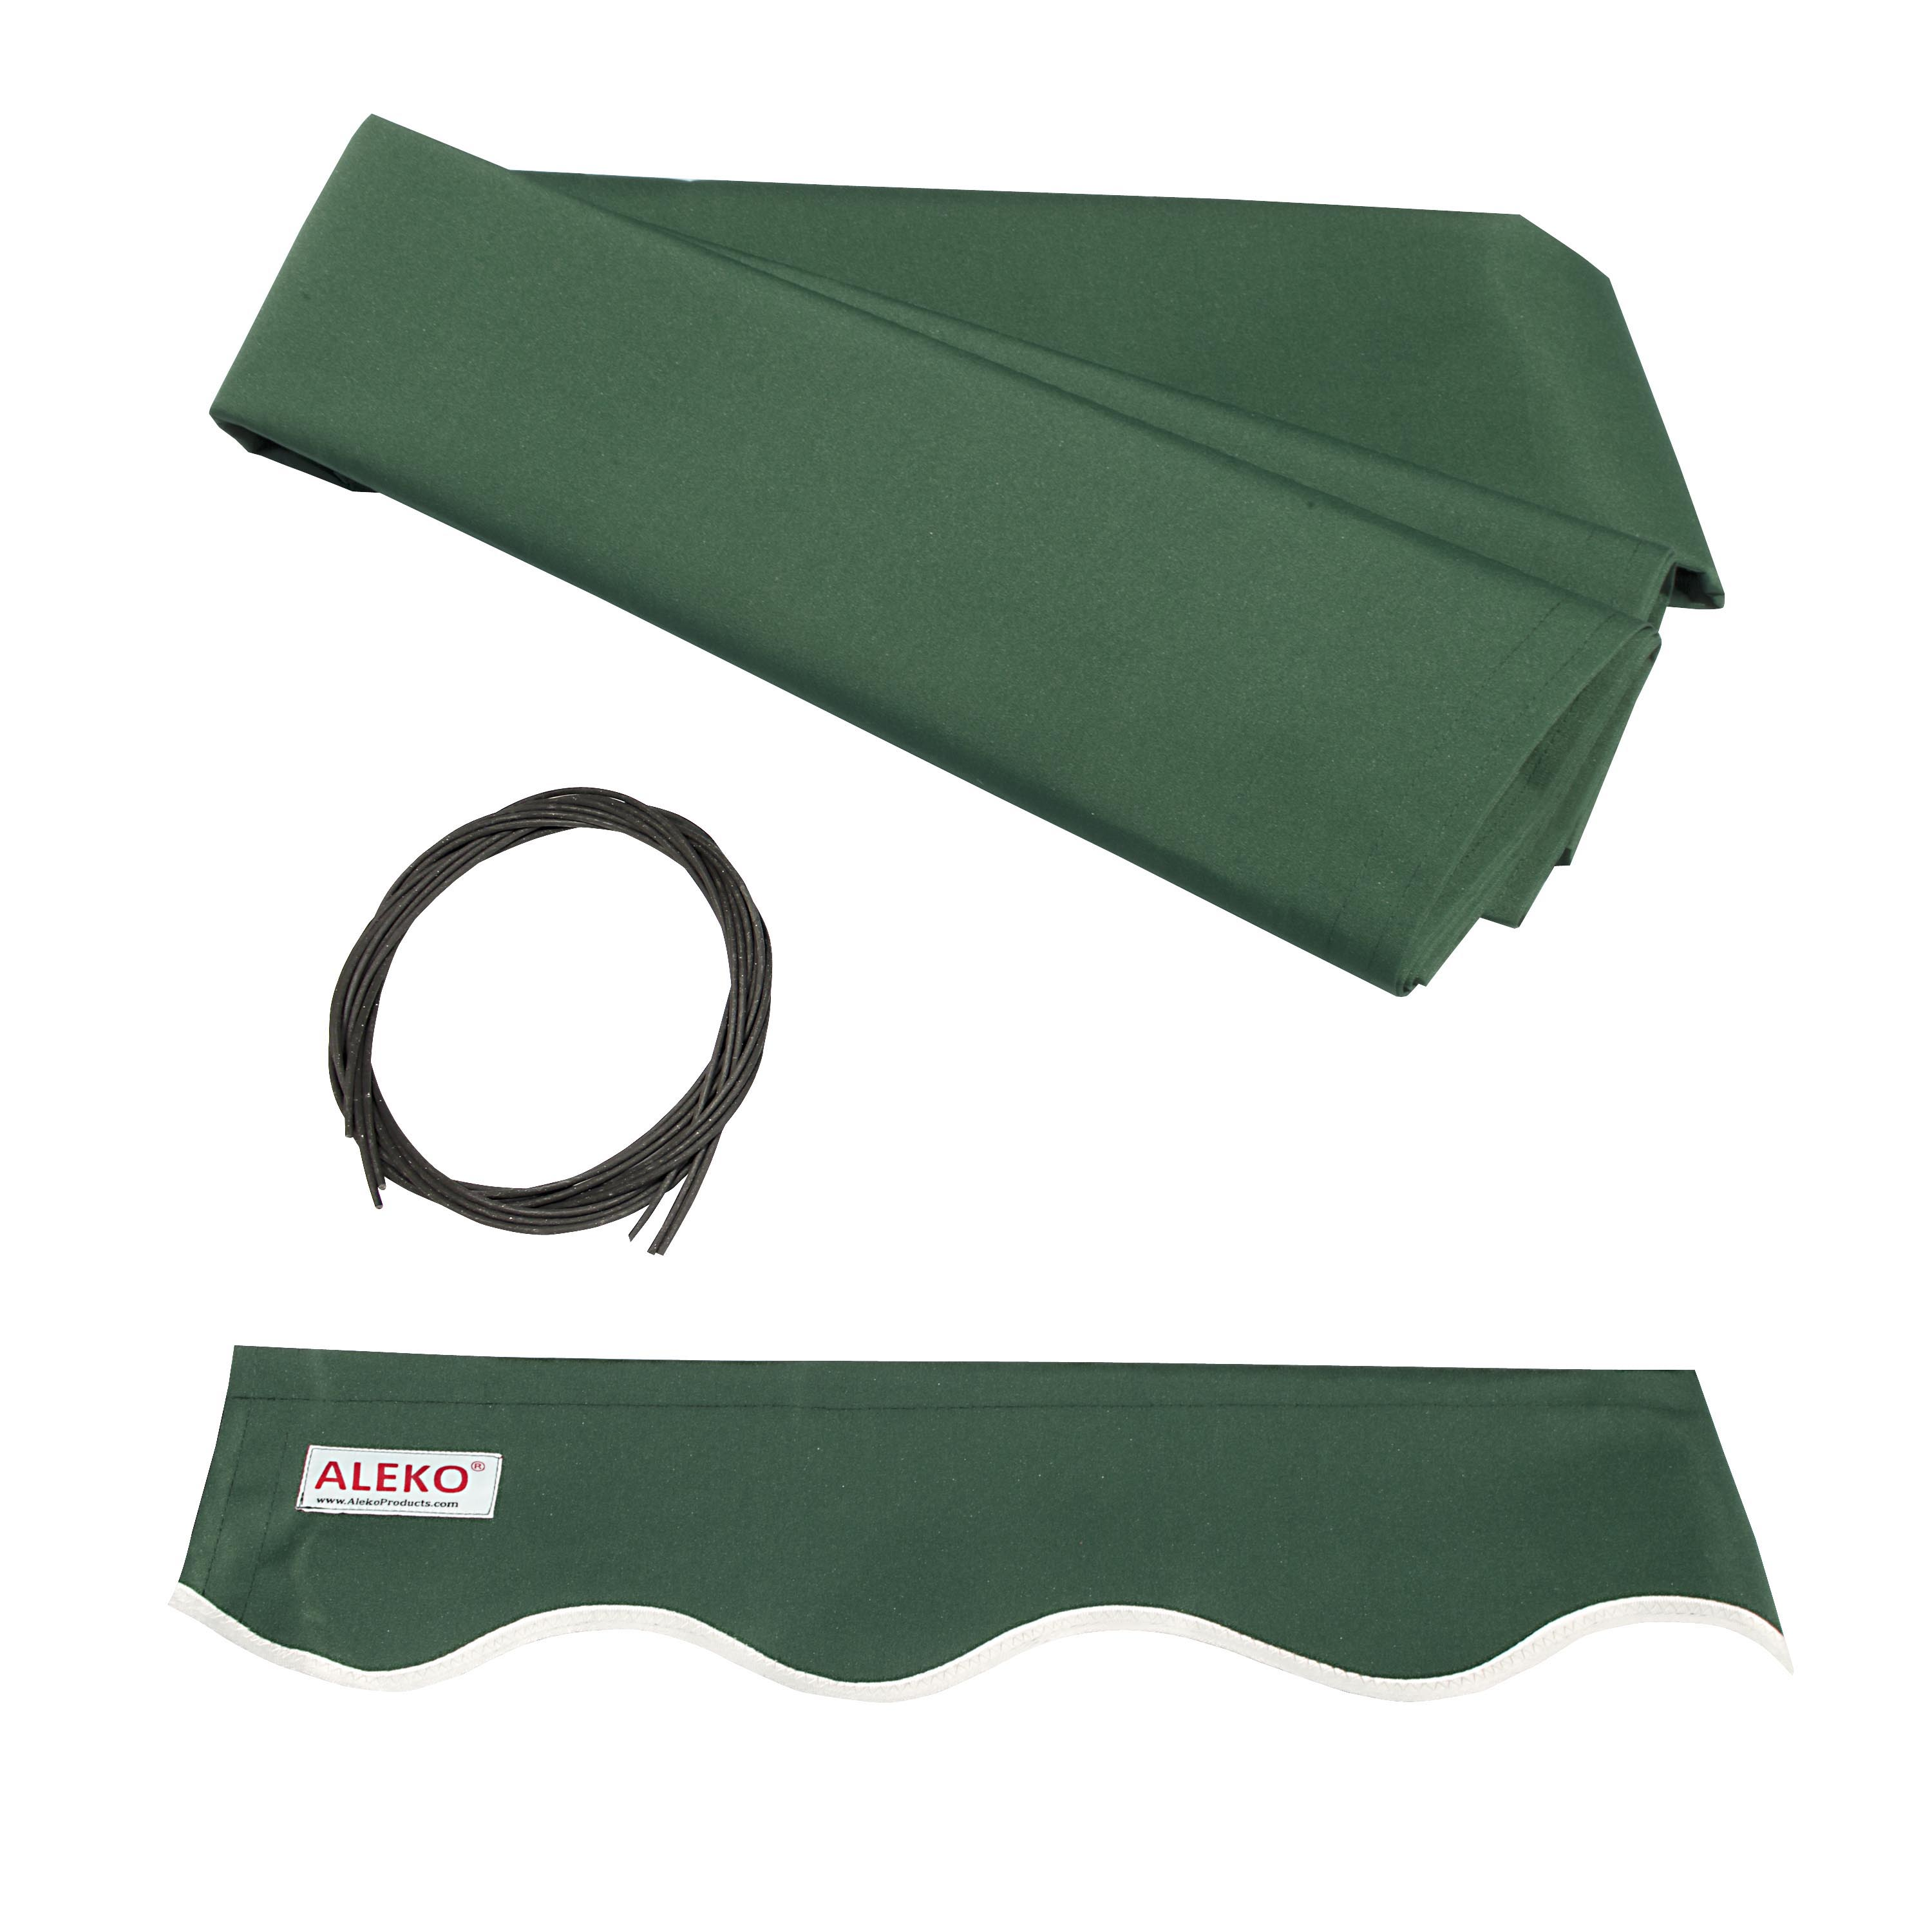 ALEKO Retractable Awning Fabric Replacement - 10x8 Feet - Green